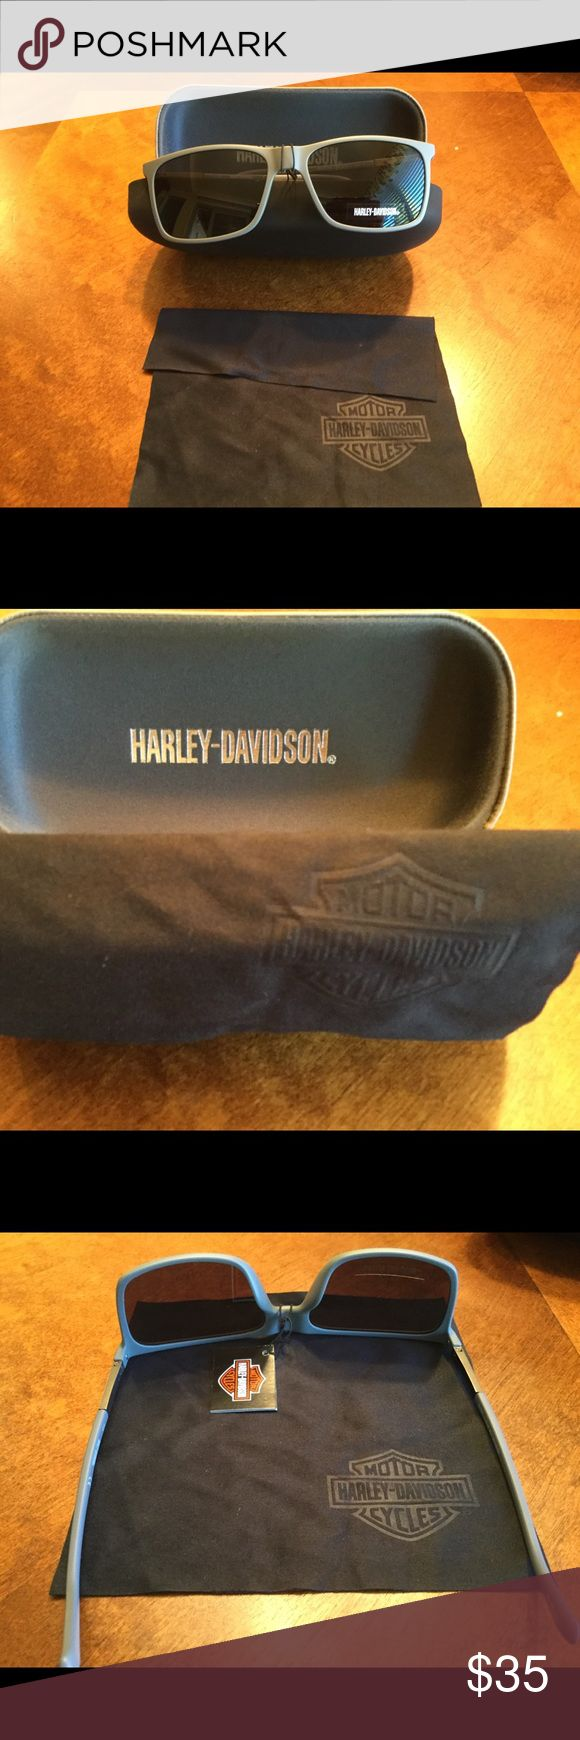 NWT Harley Davidson sunglasses with case and cloth Great sunglasses with case and custom cloth. Harley-Davidson Accessories Glasses